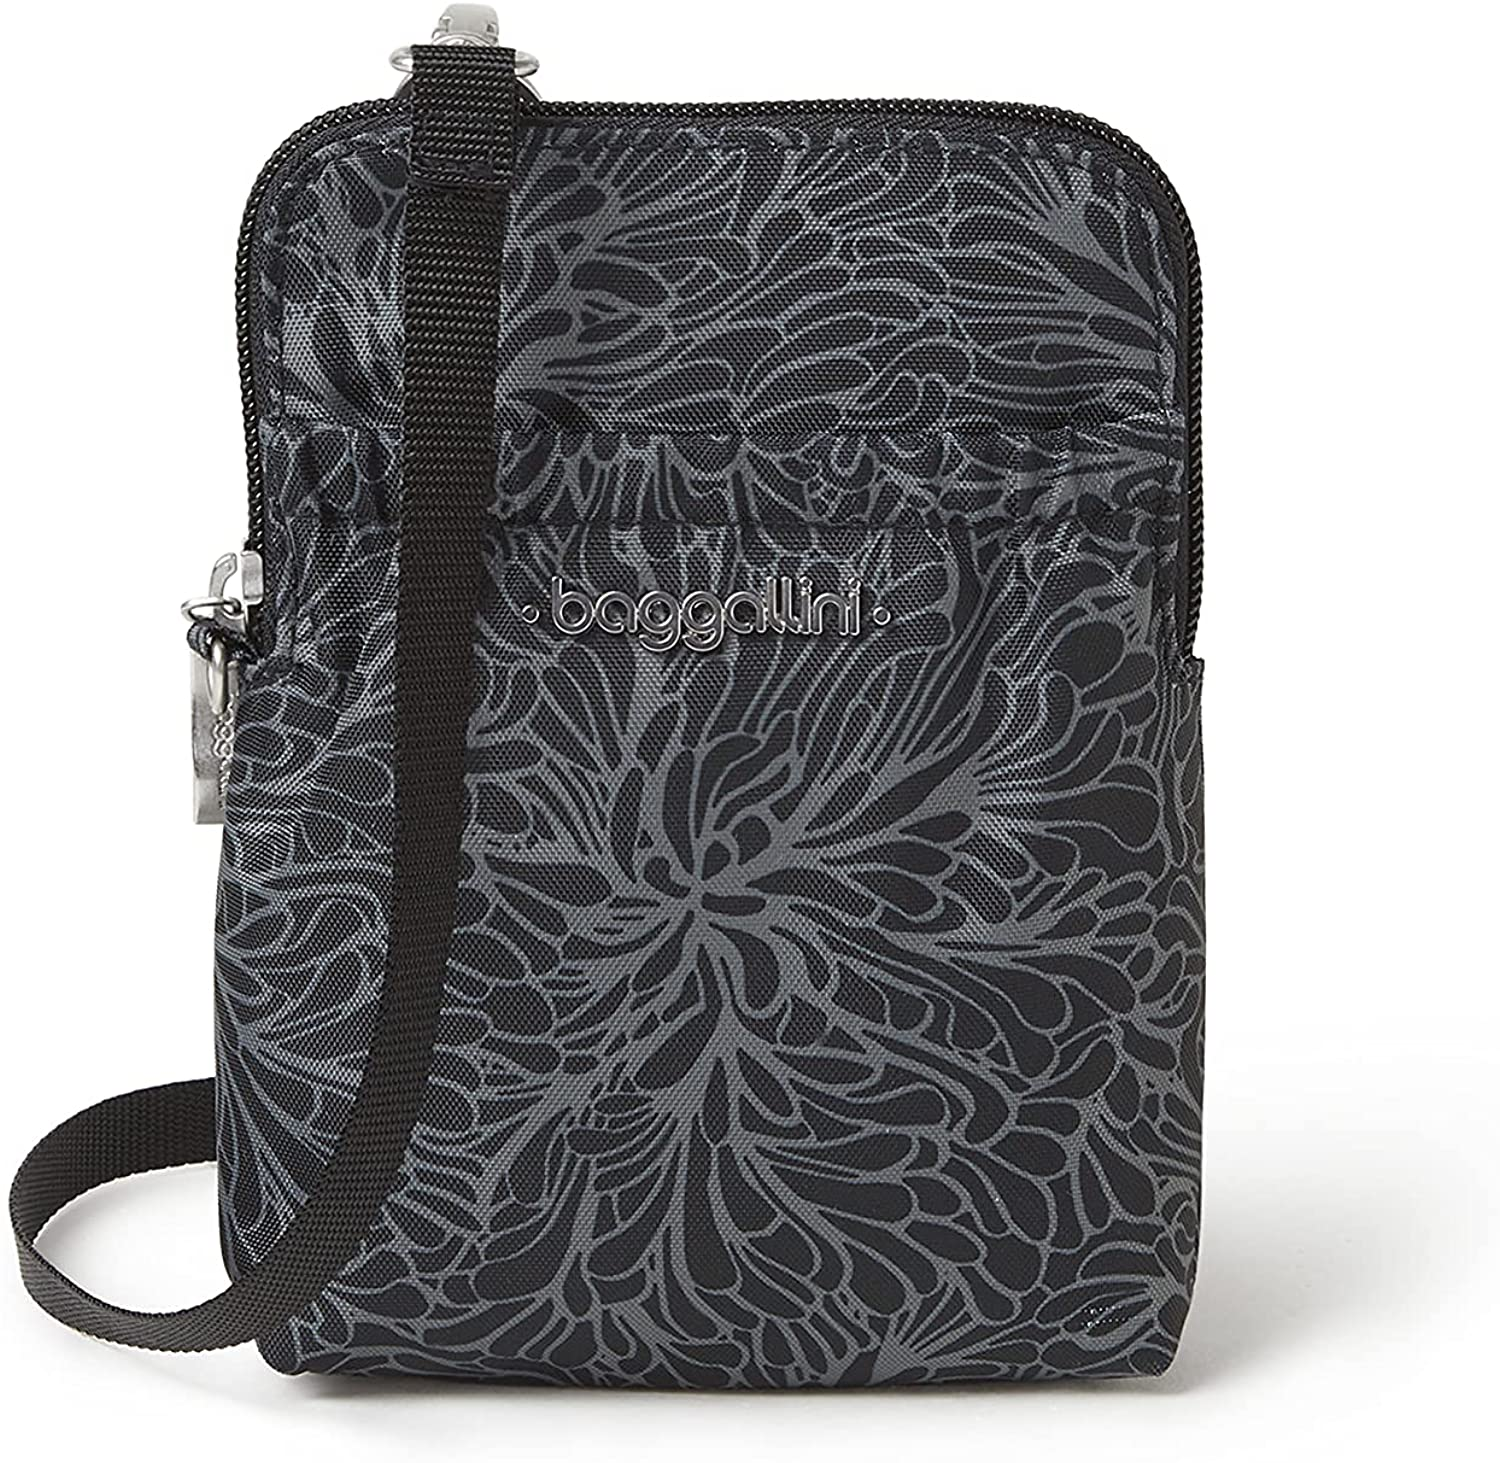 Baggallini Bryant Pouch with RFID